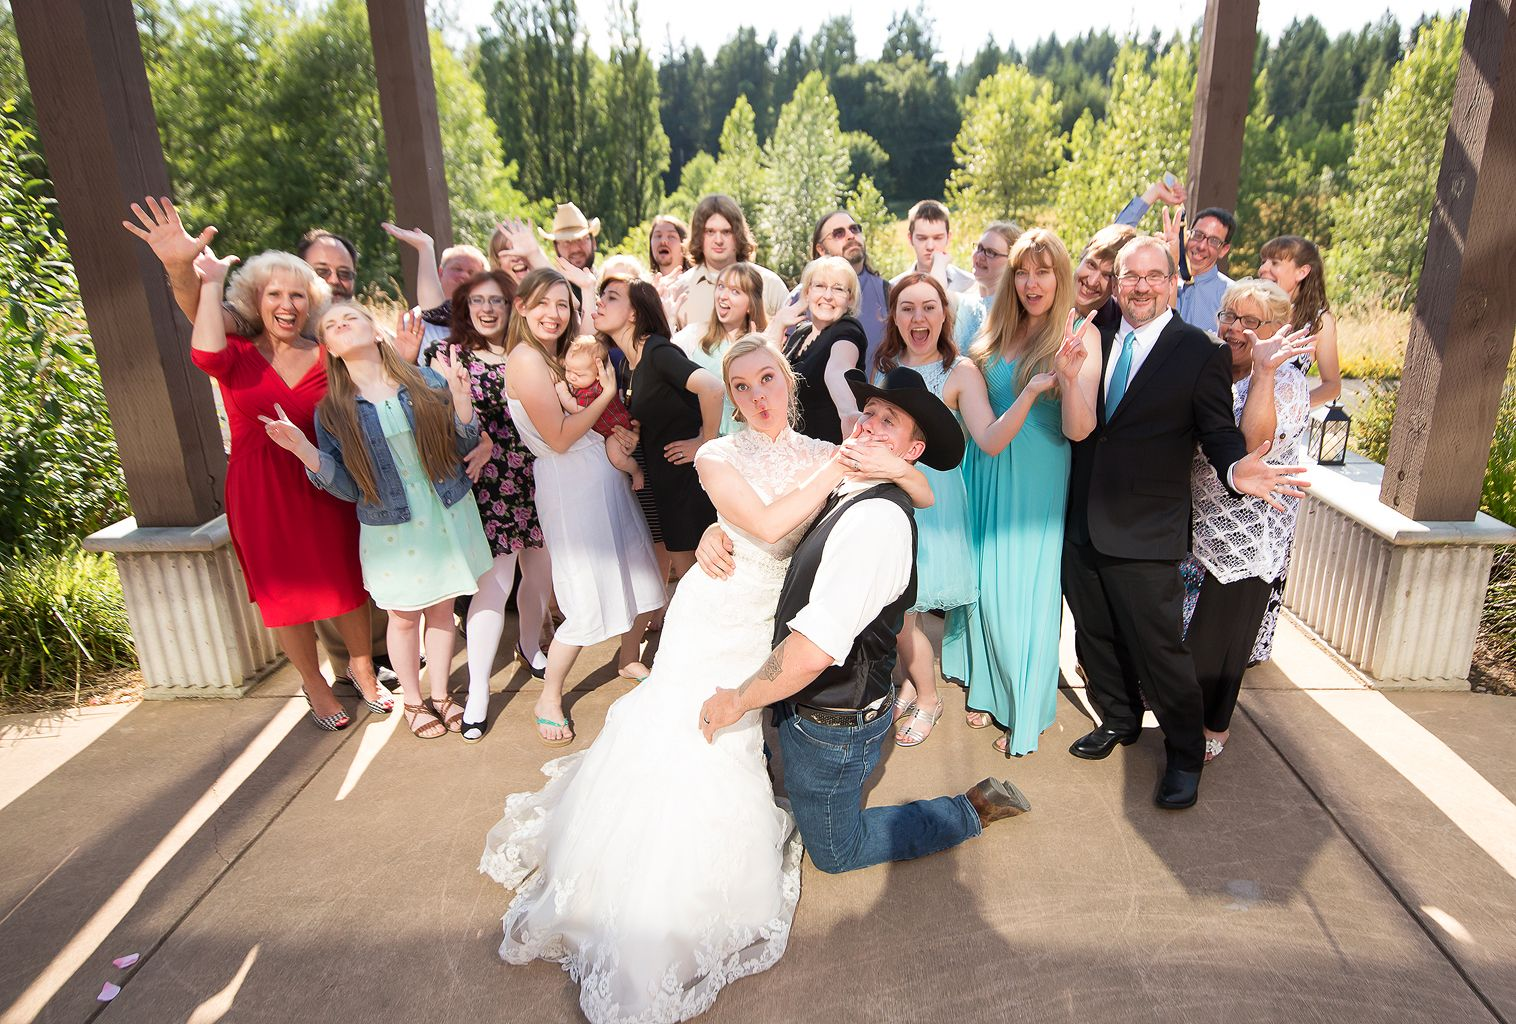 This family knows how to pull off silly faces! Photo by nallayerstudios.com